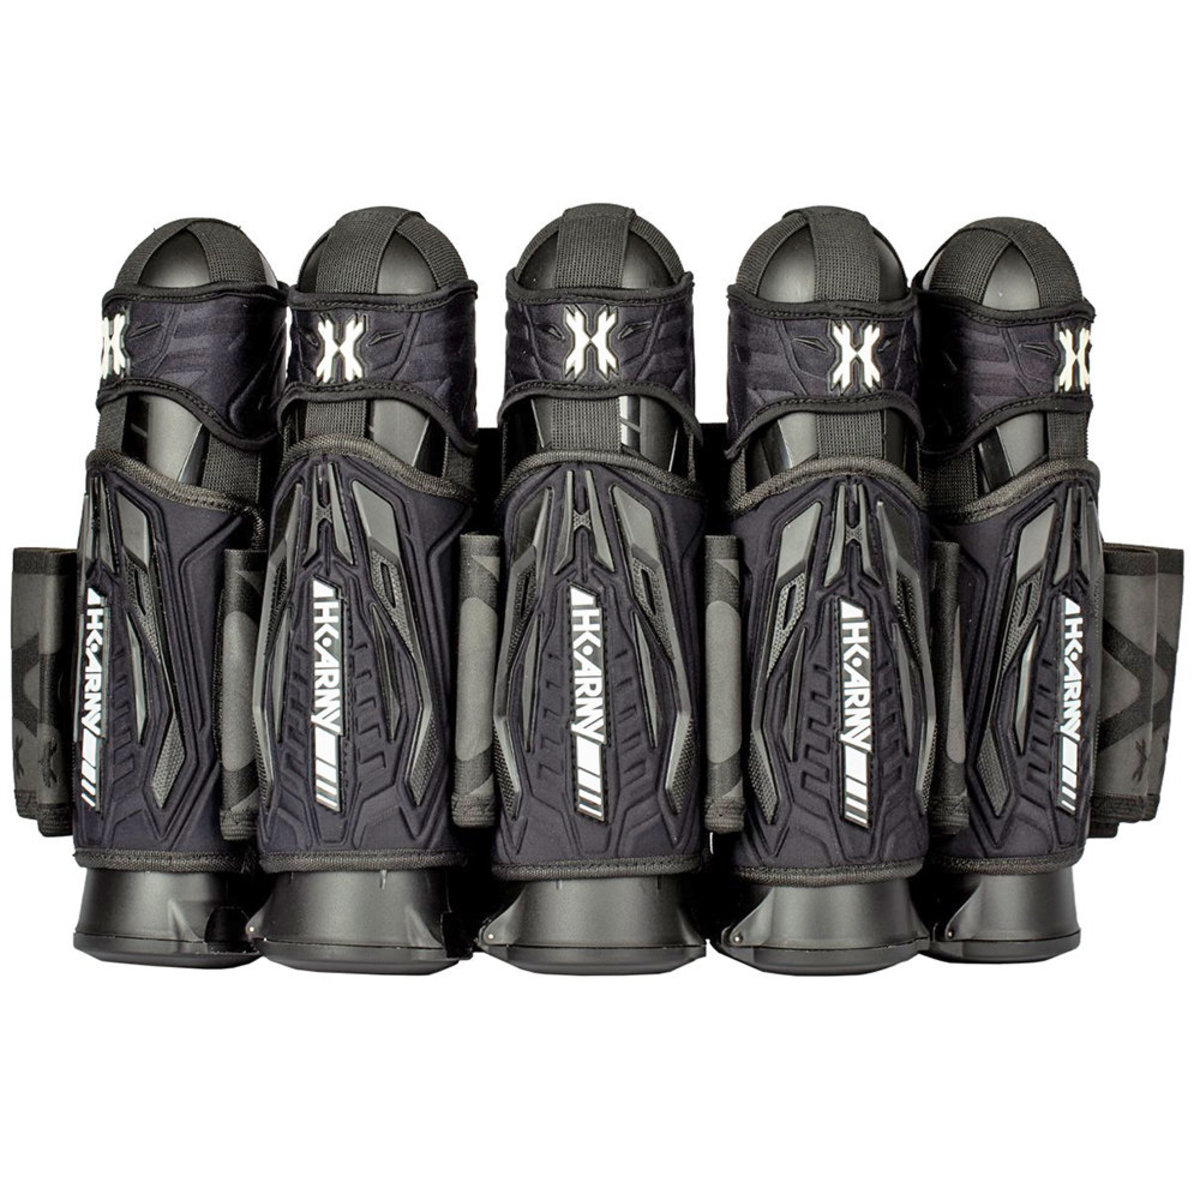 View larger image of HK Army Zero-G 2.0 Paintball Harness - 5+4 pods